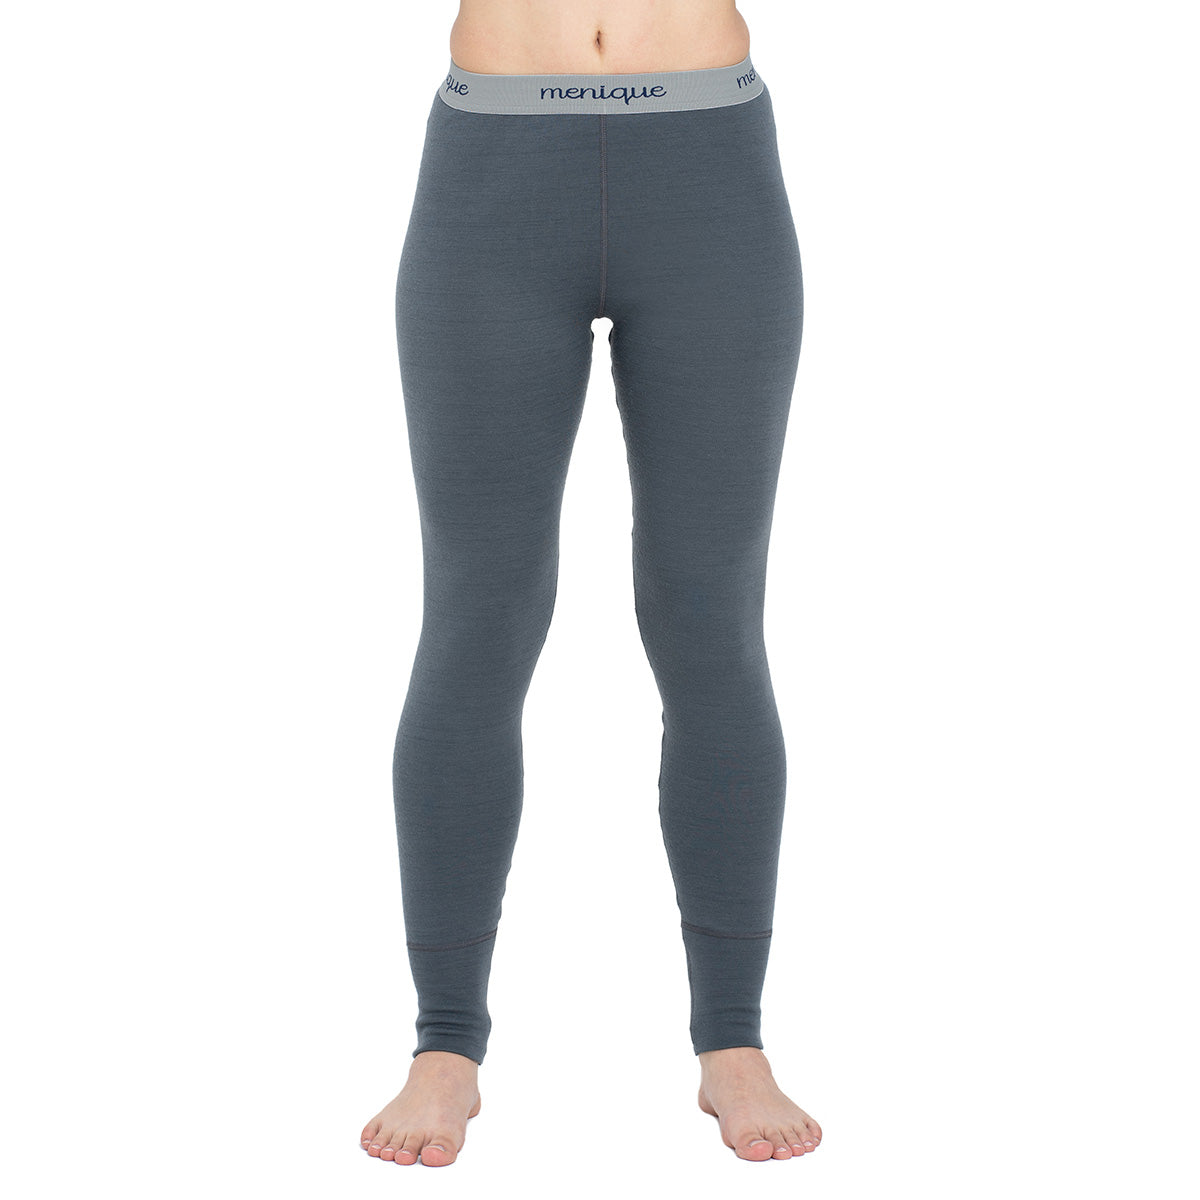 menique Women's Merino 250 Pants RB Perfect Grey Color